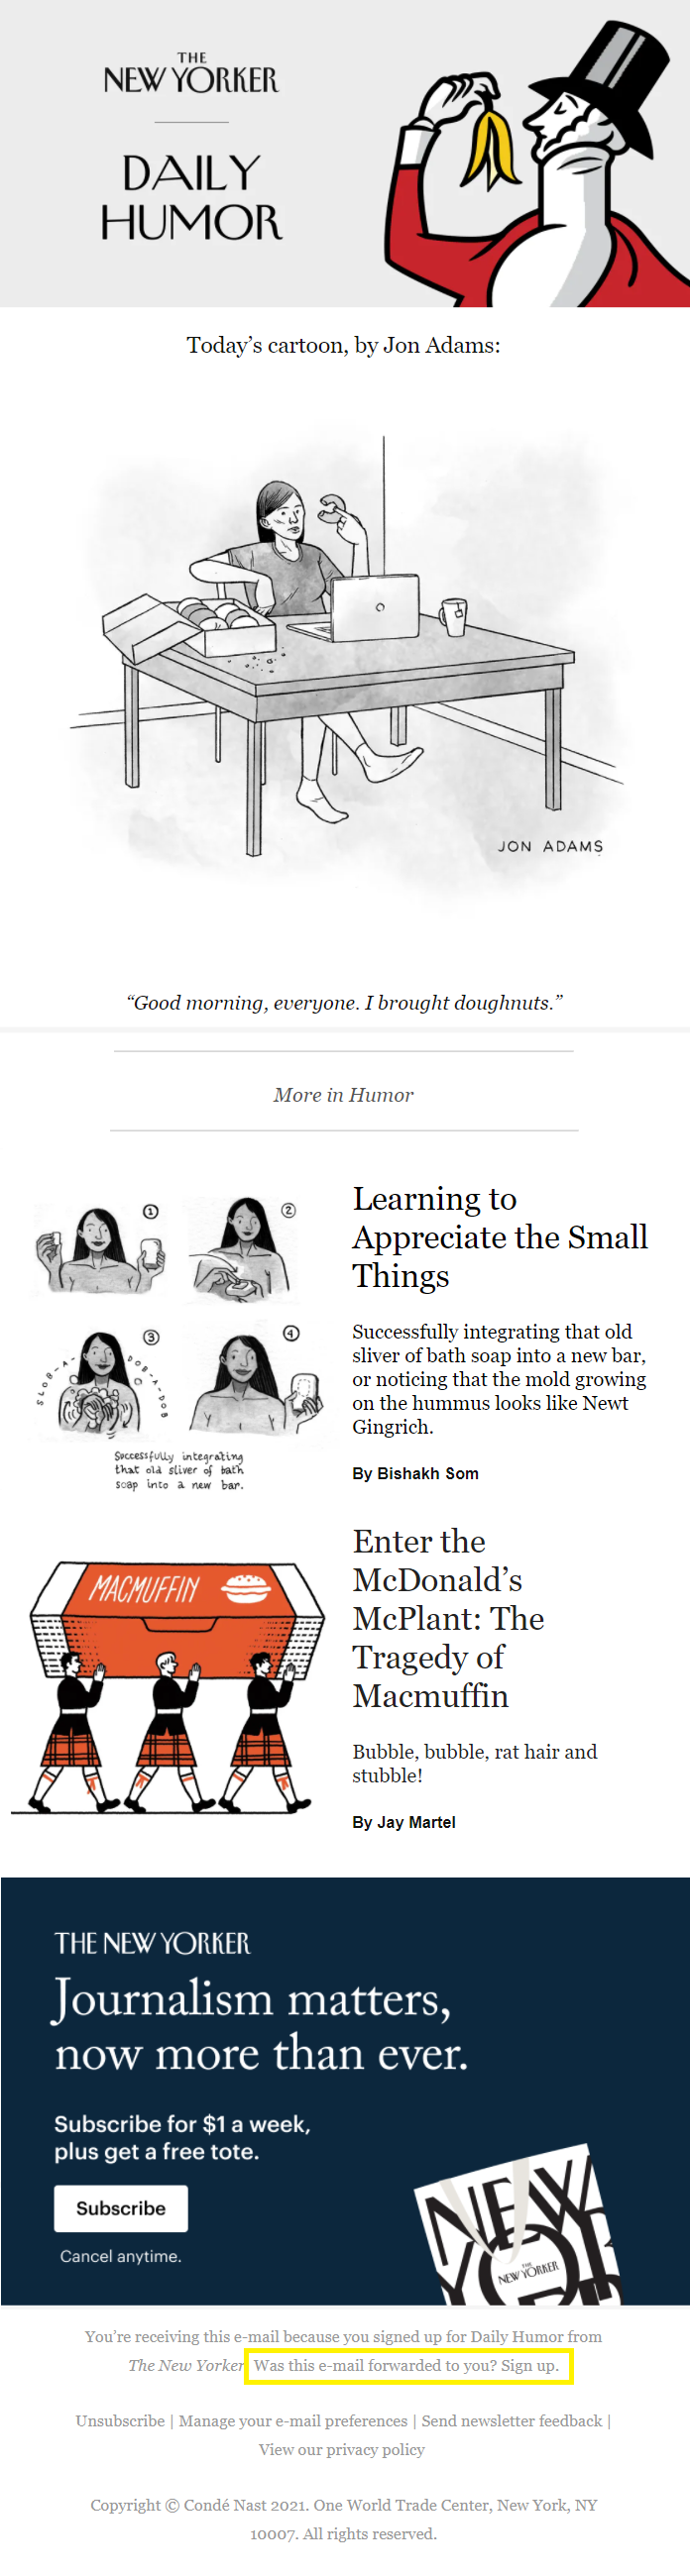 newyorker-daily-humor-learning-to-appreciate-the-small-thing